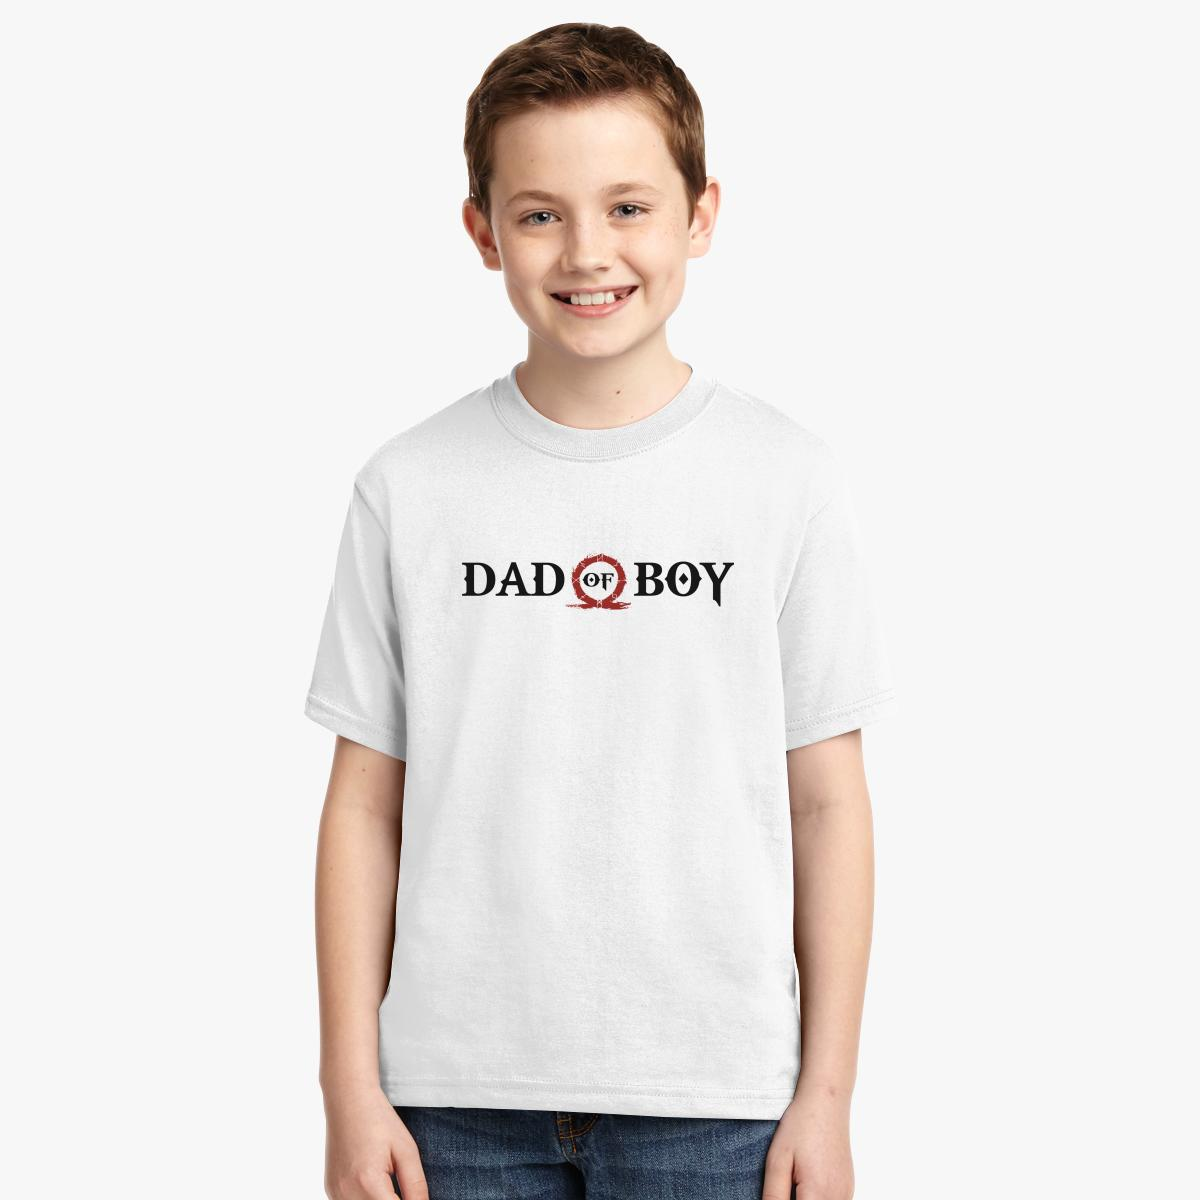 9f6dd63b Dad And Boy T Shirt | RLDM